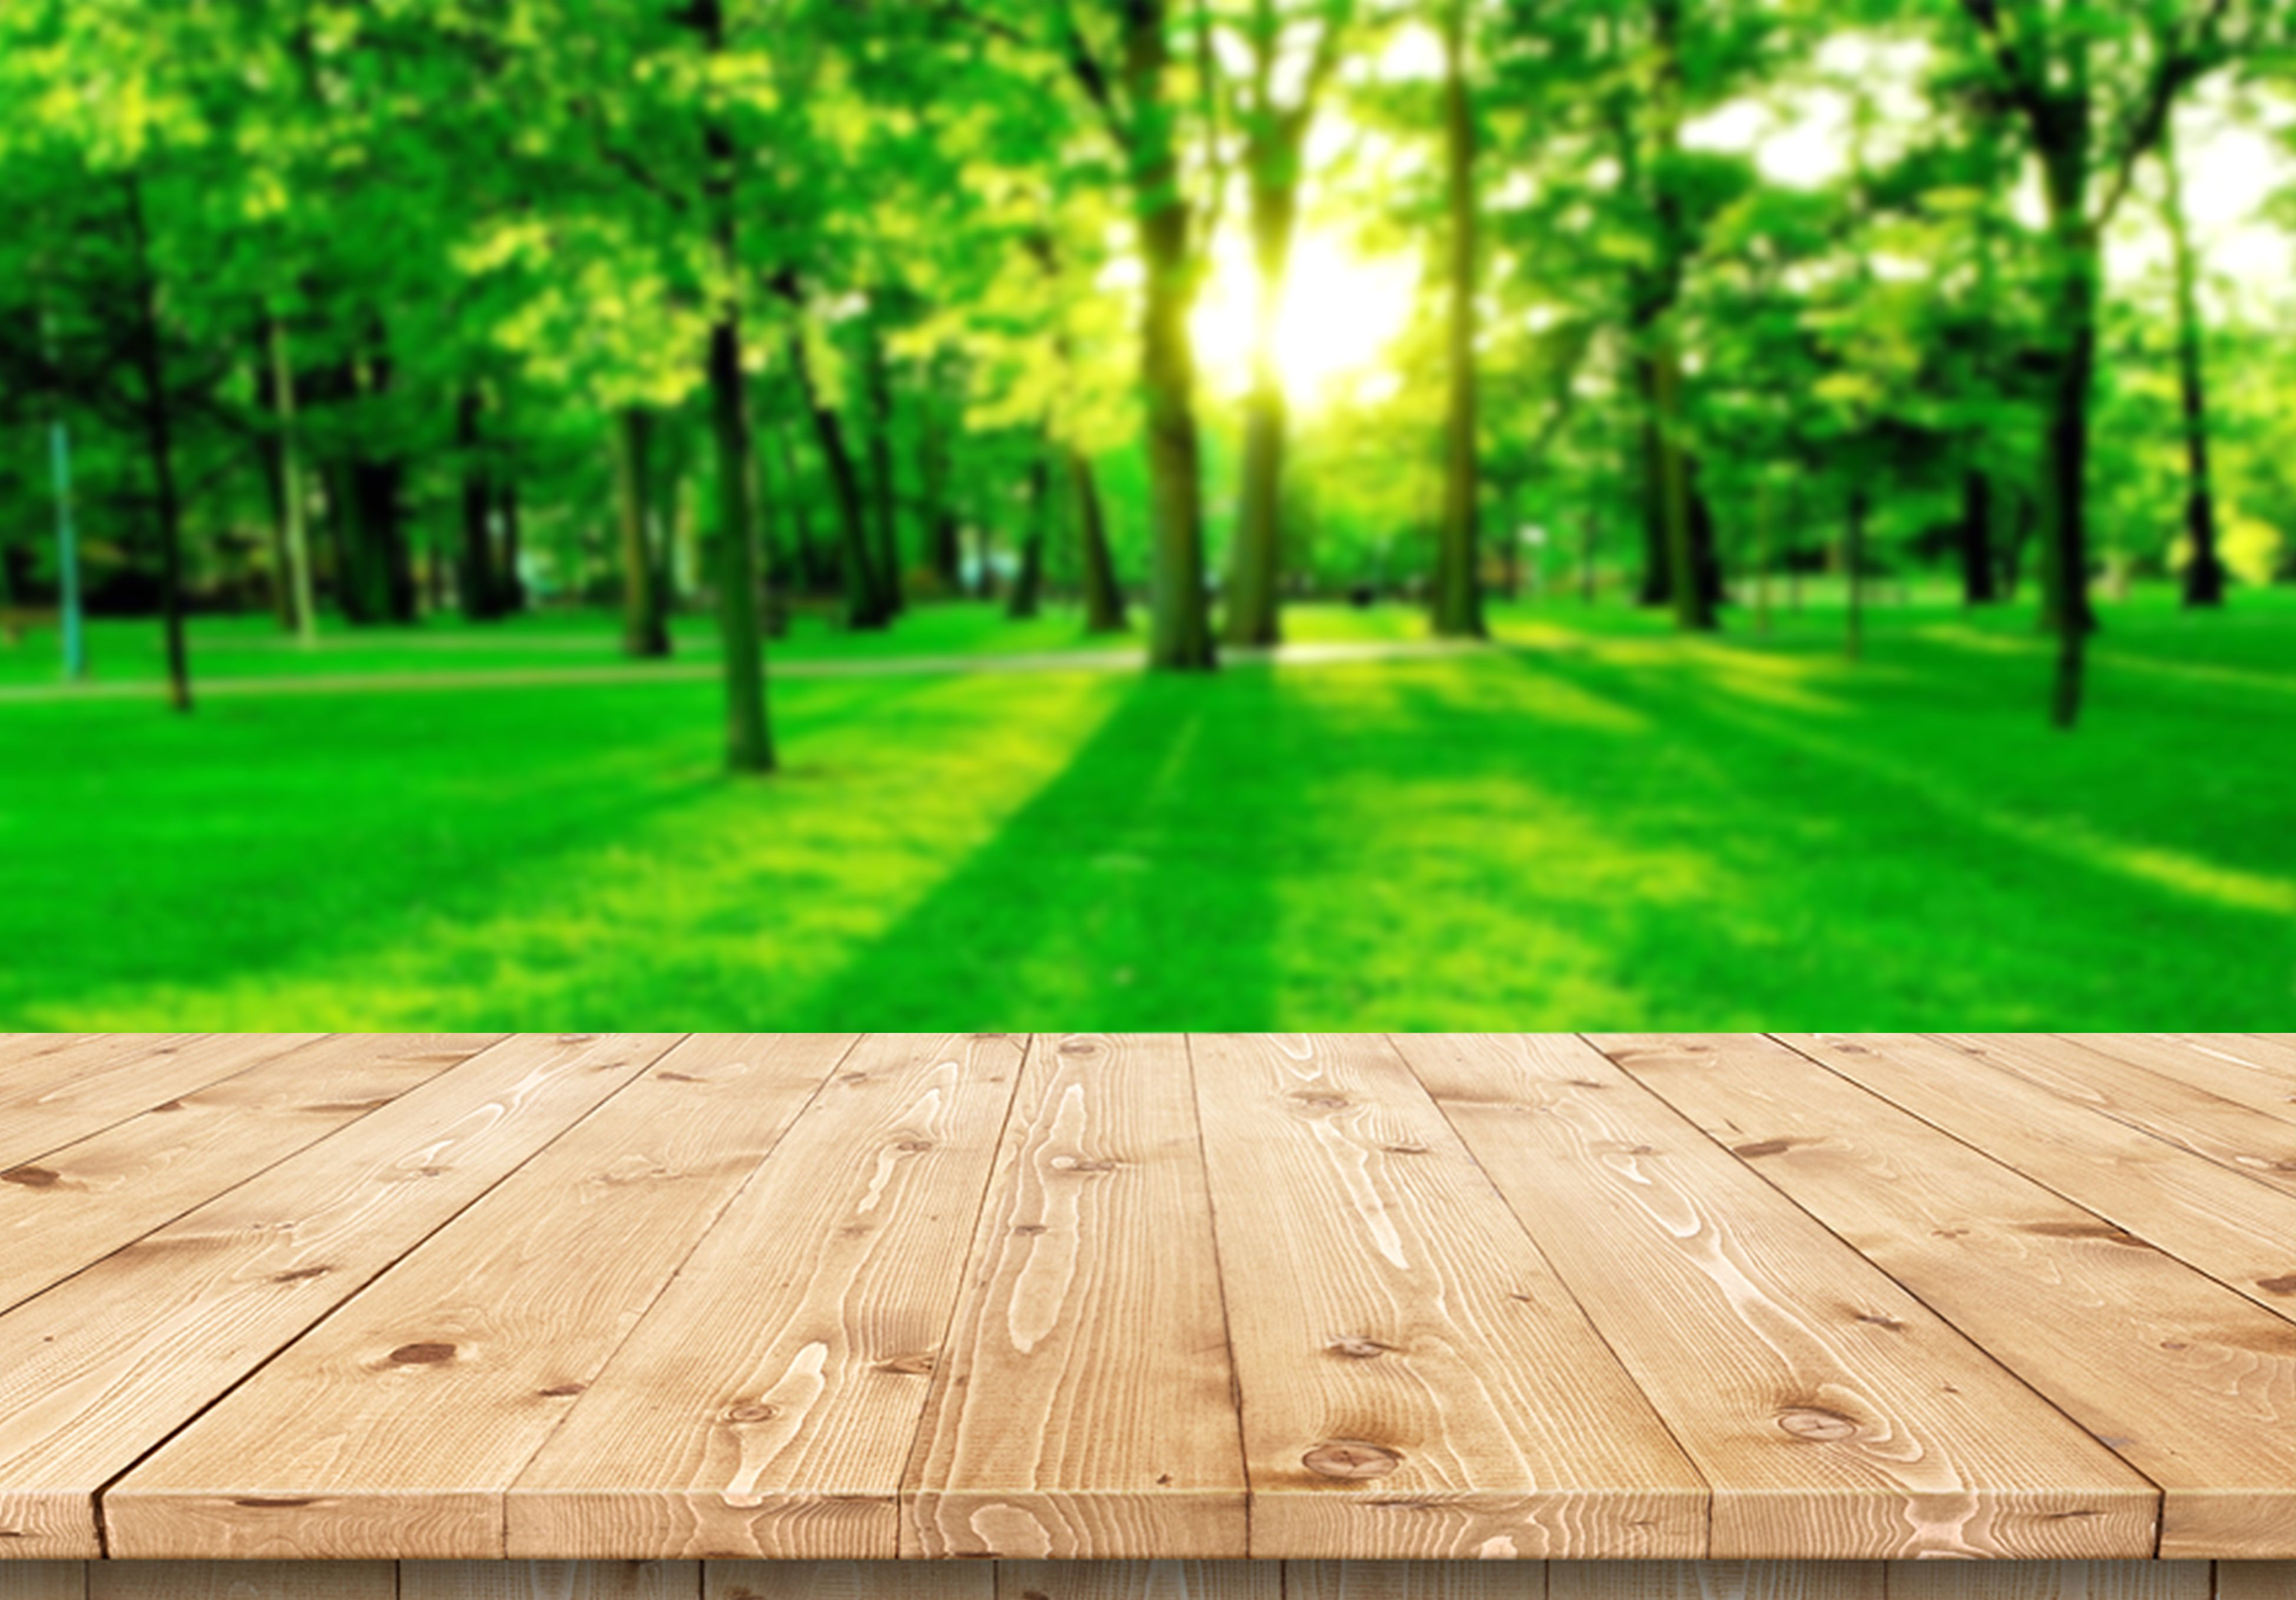 Wood Floor With Blurred Nature Park Background And Summer Season Use For Product Display Background Wood Floors Wood